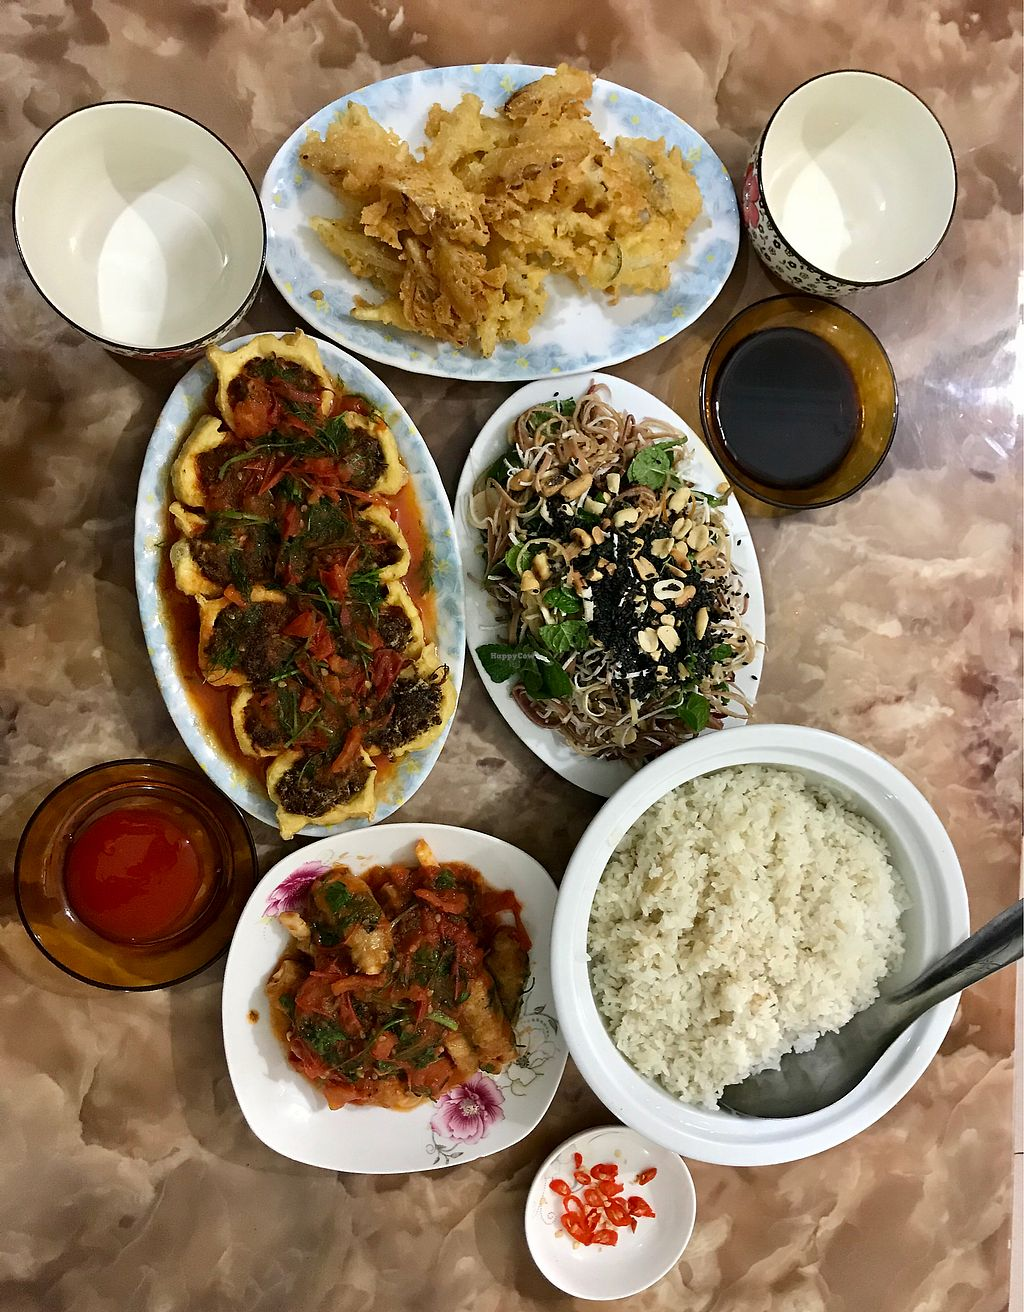 """Photo of An Lac  by <a href=""""/members/profile/Subra"""">Subra</a> <br/>Food was fresh and tasty <br/> December 26, 2017  - <a href='/contact/abuse/image/85060/339119'>Report</a>"""